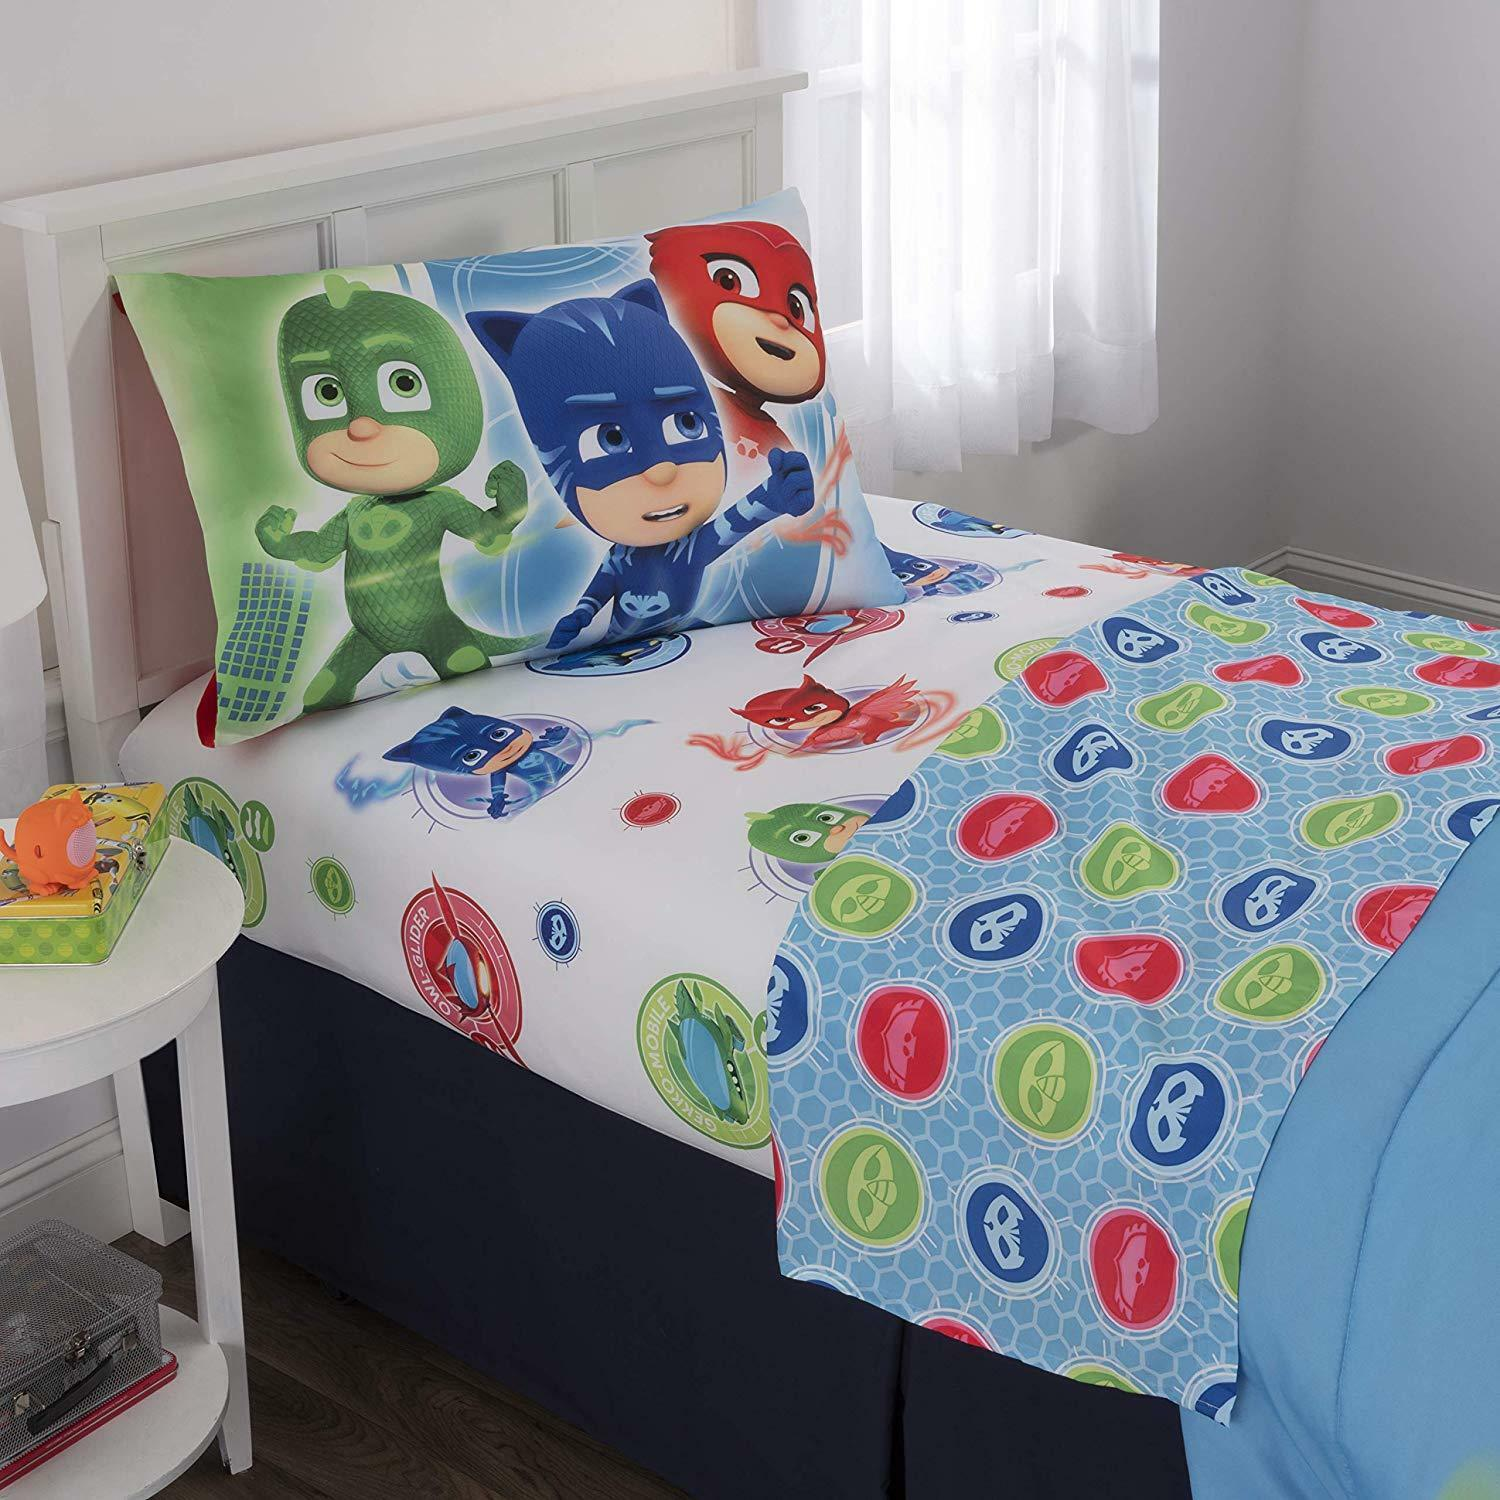 Duvet Cover Pj Pj Pj Masks Blanket Catboy Kids Single Boys Throw